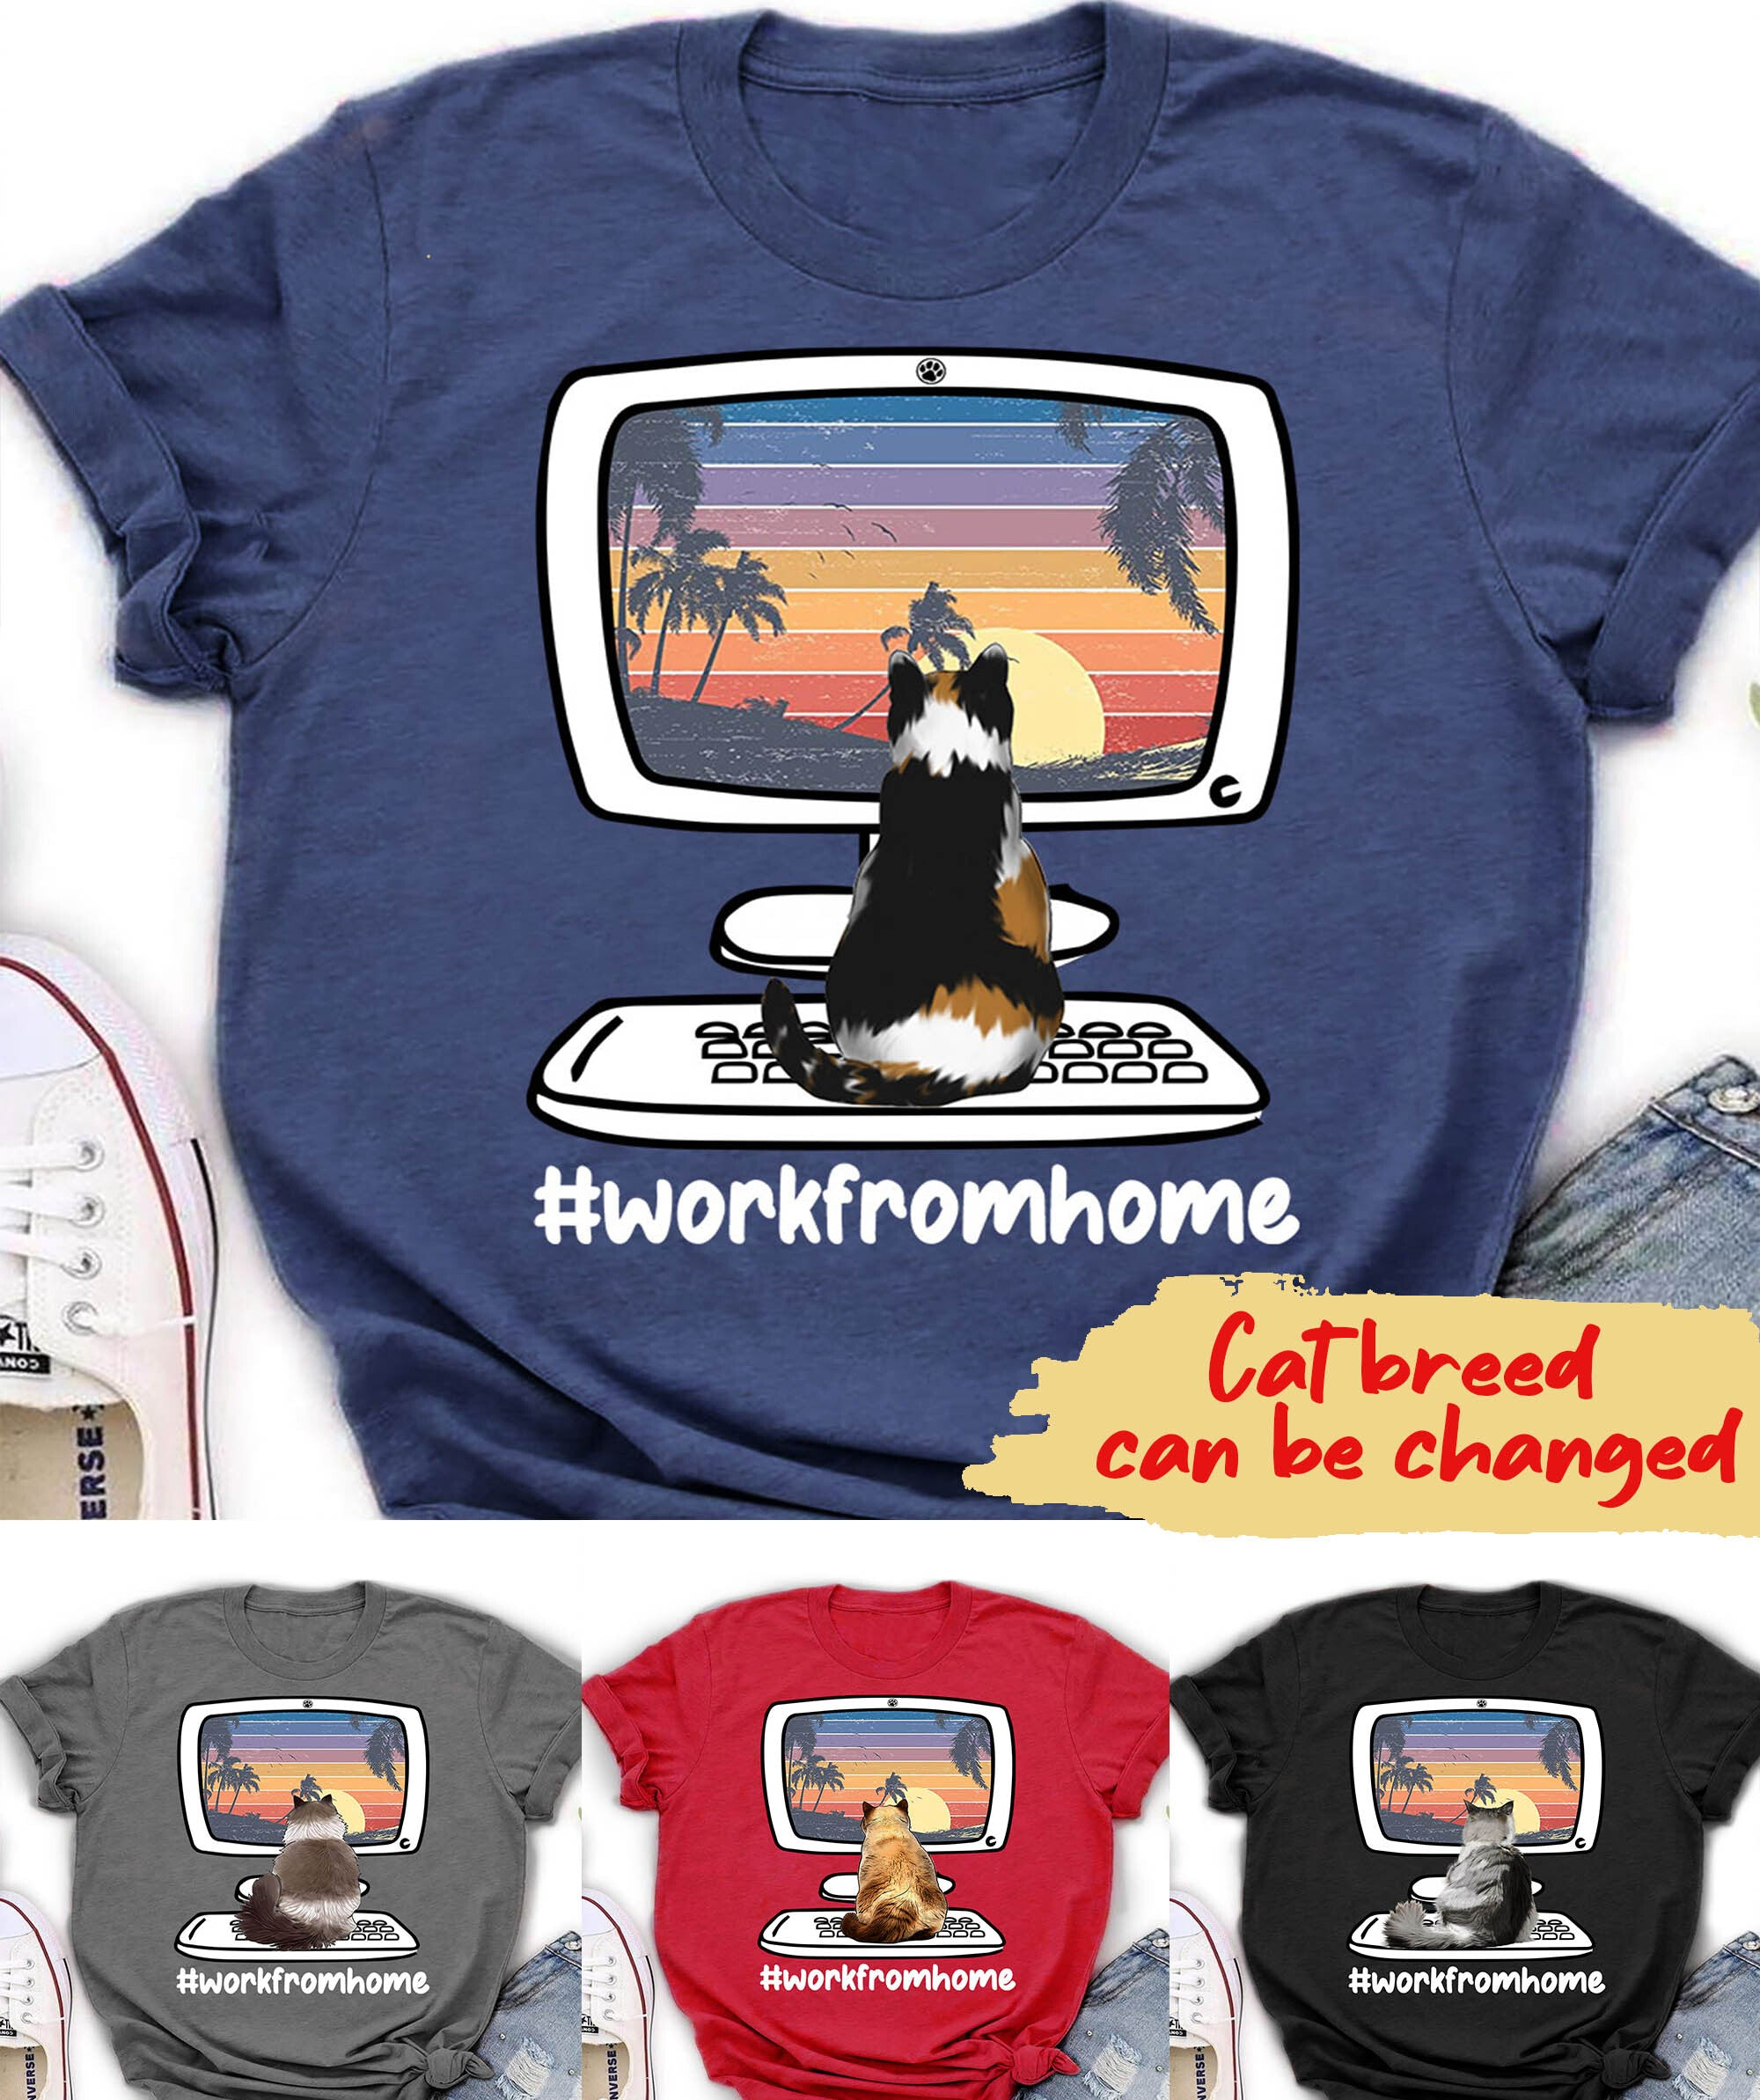 Work from home - Personalized Custom T-shirt